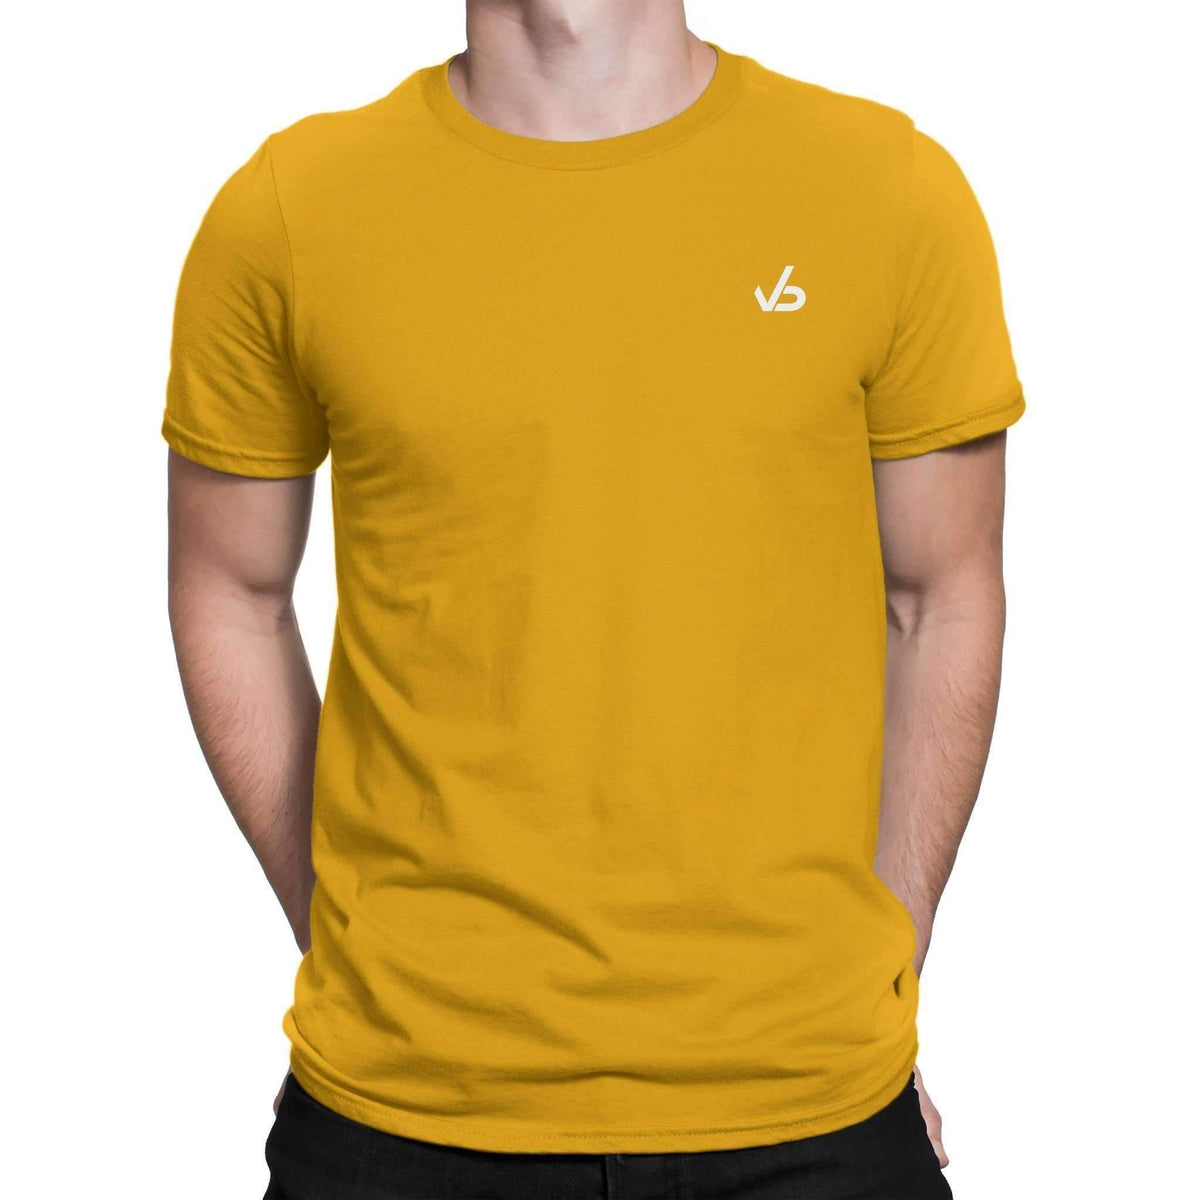 Vaisb Classic - Short Sleeve Men's T-Shirt